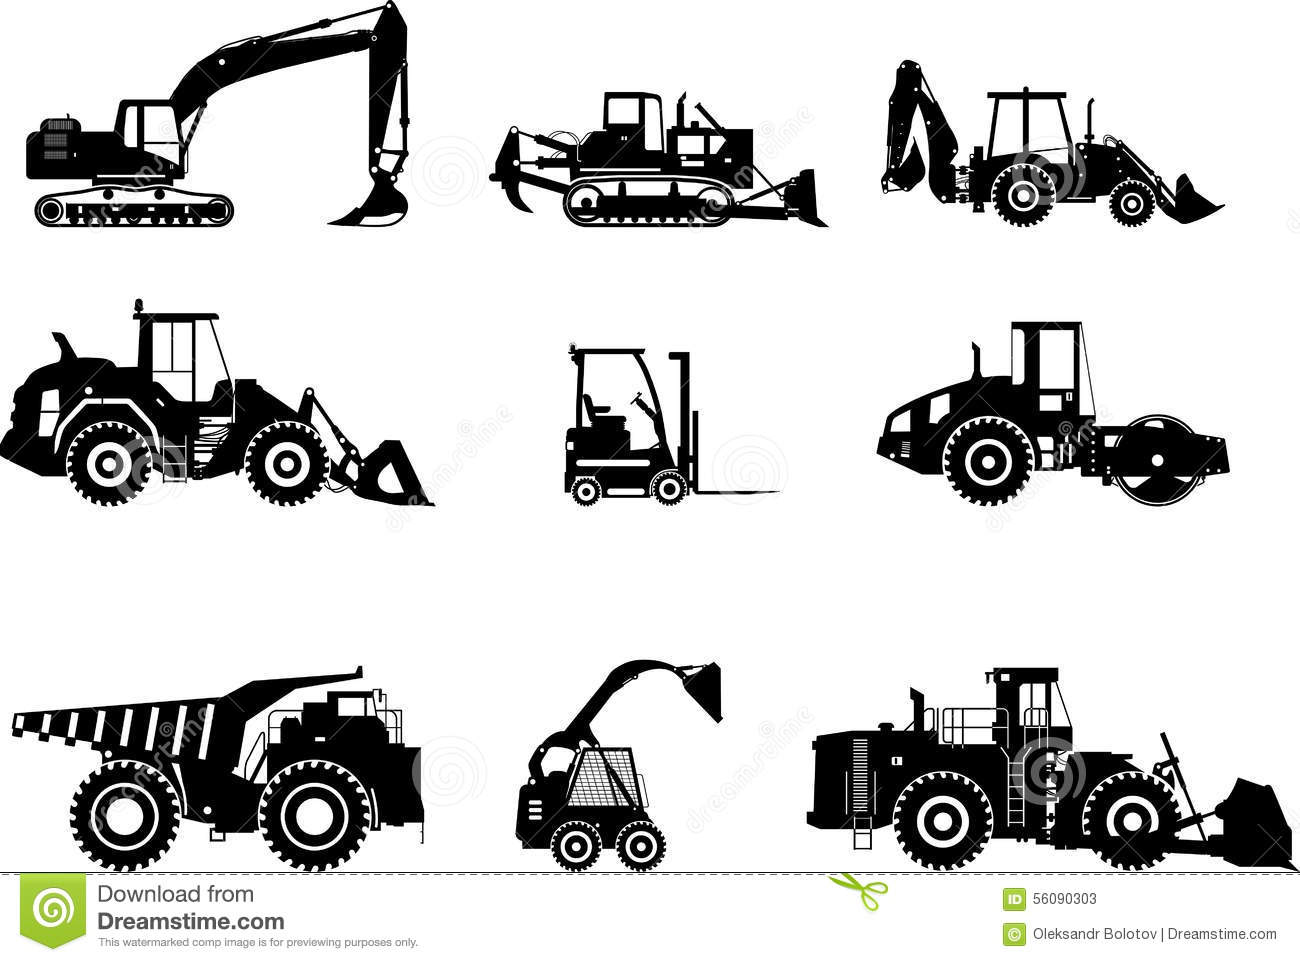 Bulldozer 20clipart likewise 2474943 additionally Post cut Out Shape Patterns 492378 furthermore Skylanders Spyro Coloring Pages Coloring Pages Coloring Pages Swap Force Freeze Blade Dark Coloring Pages Skylanders Spyros Adventure Coloring Pages together with . on caterpillar outline